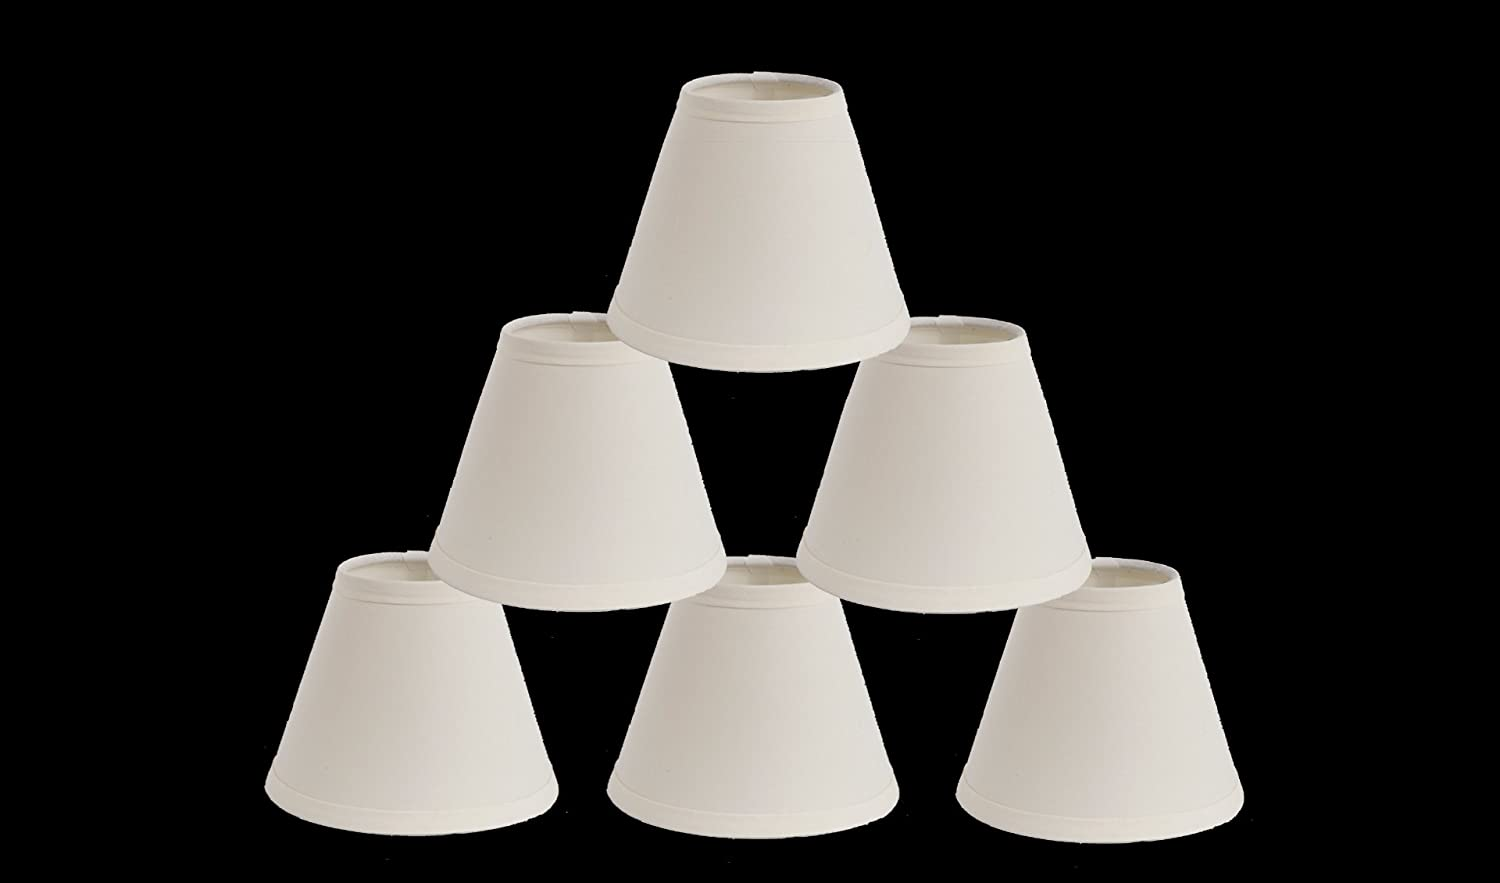 shade it use lamp shades upside amazon light as only pendant down and a large turn